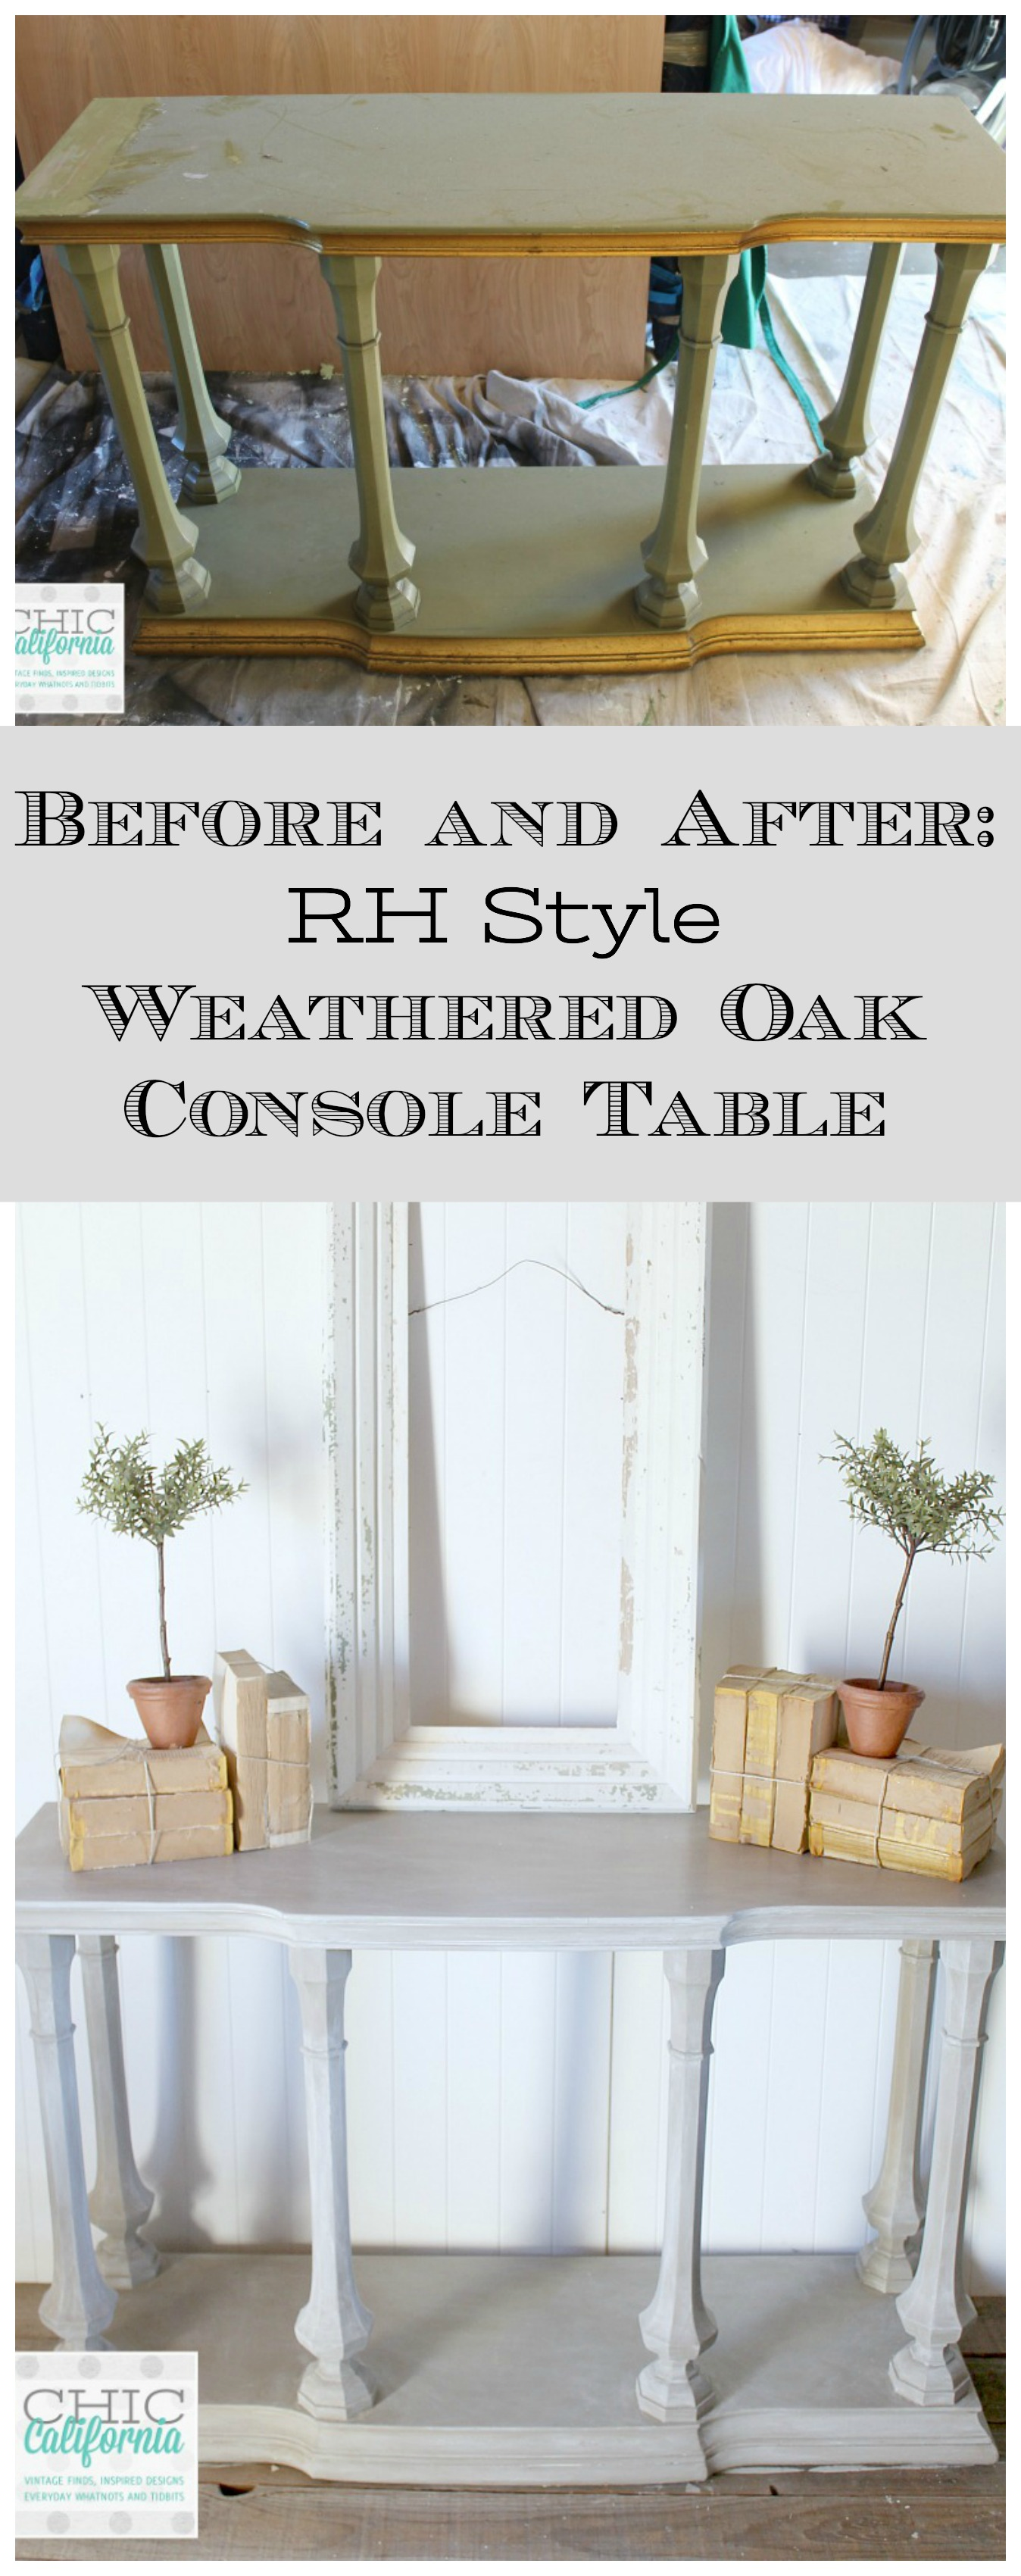 Before and After: RH Style Weathered Oak Console Table